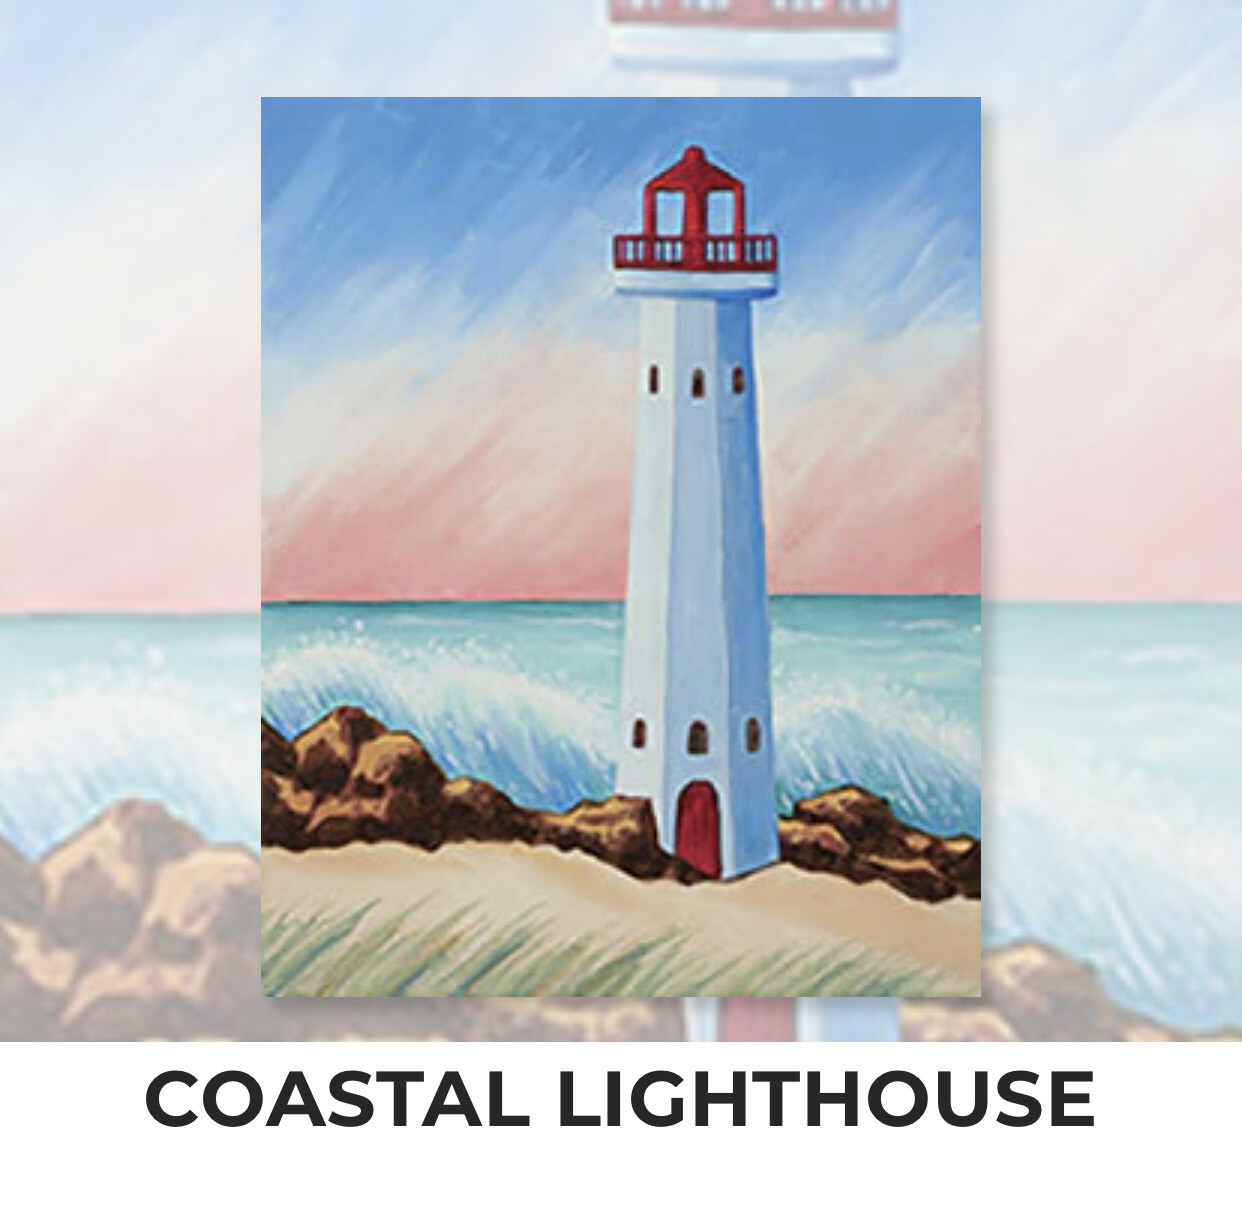 COASTAL LIGHTHOUSE - Zoom Paint and Sip Night - Tuesday, June 15 - 6-8pm - Order By May 31 - Reservation For One Adult